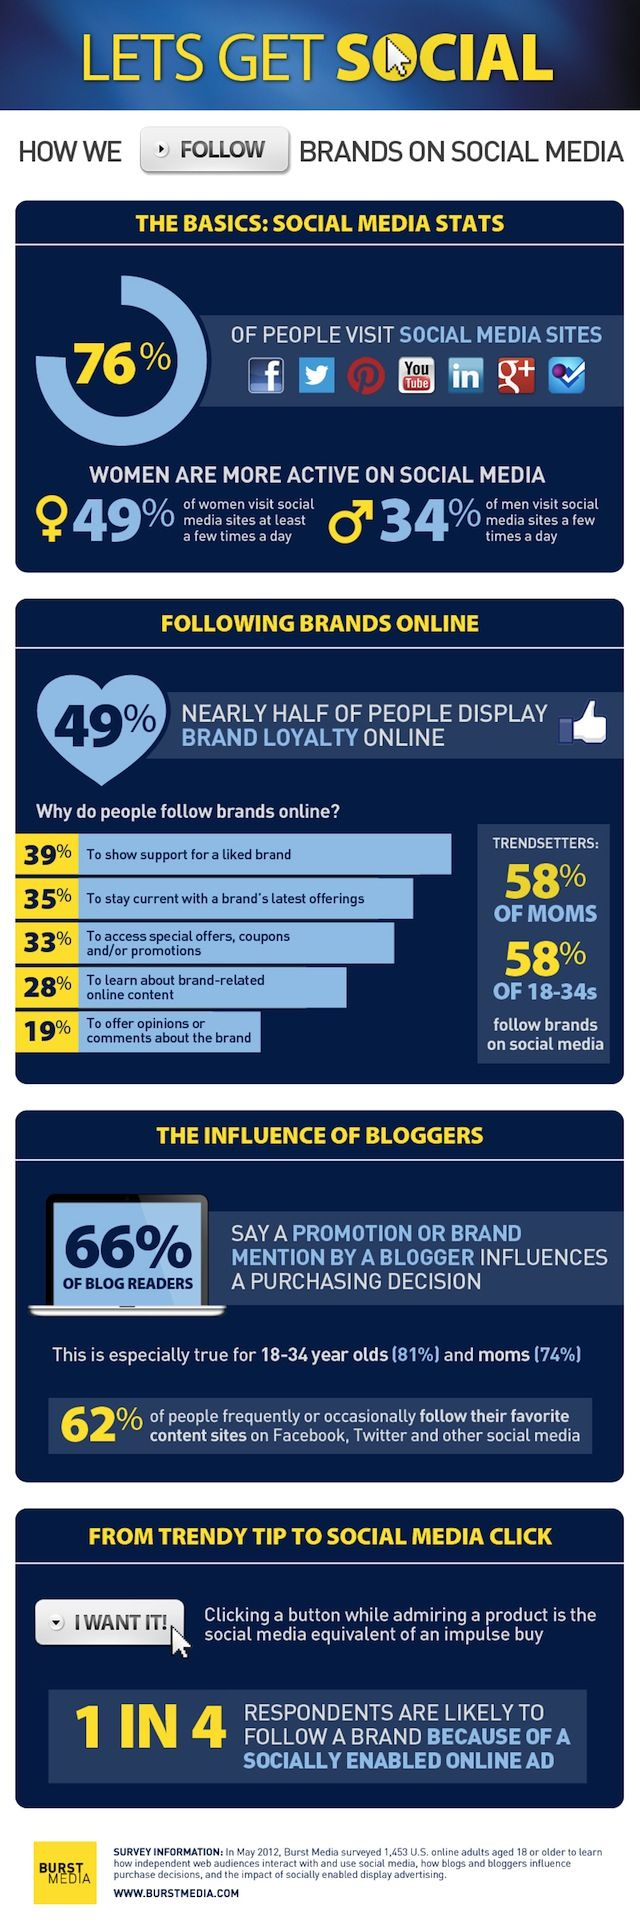 How we Follow Brands on Social Media #Infographic #smm